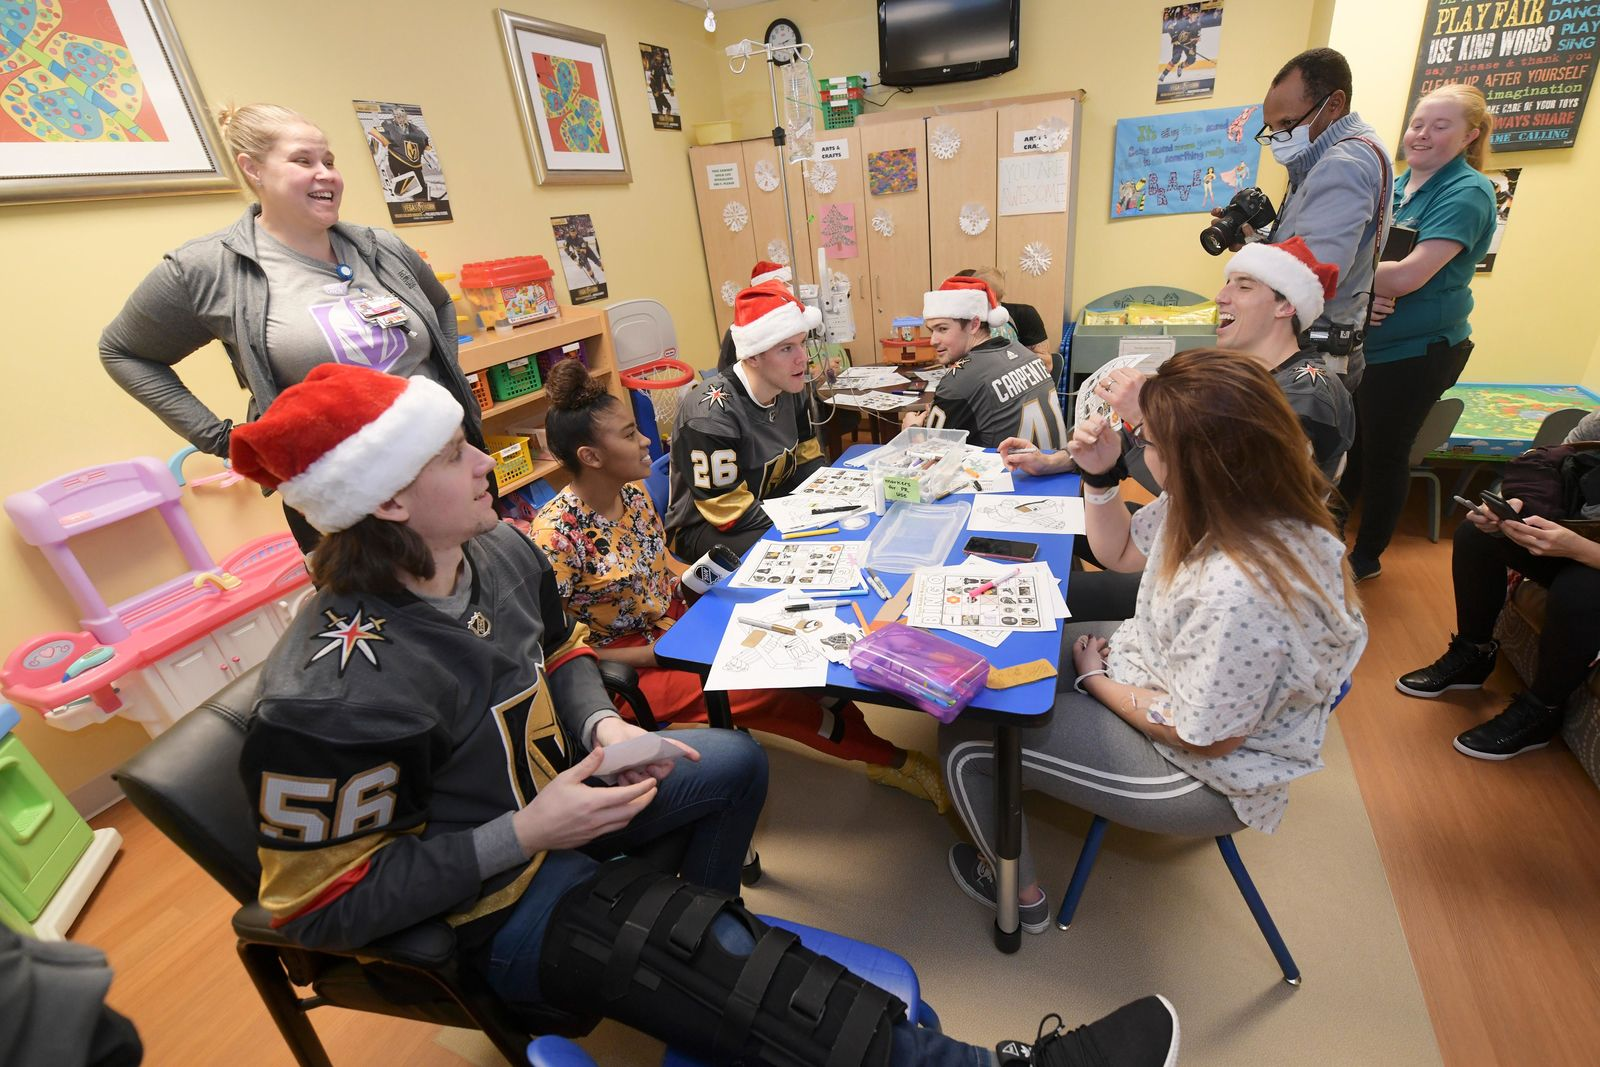 Vegas Golden Knights players visit with young patients and play bingo during a visit to Summerlin Hospital Friday, December 21, 2018. CREDIT: Sam Morris/Las Vegas News Bureau